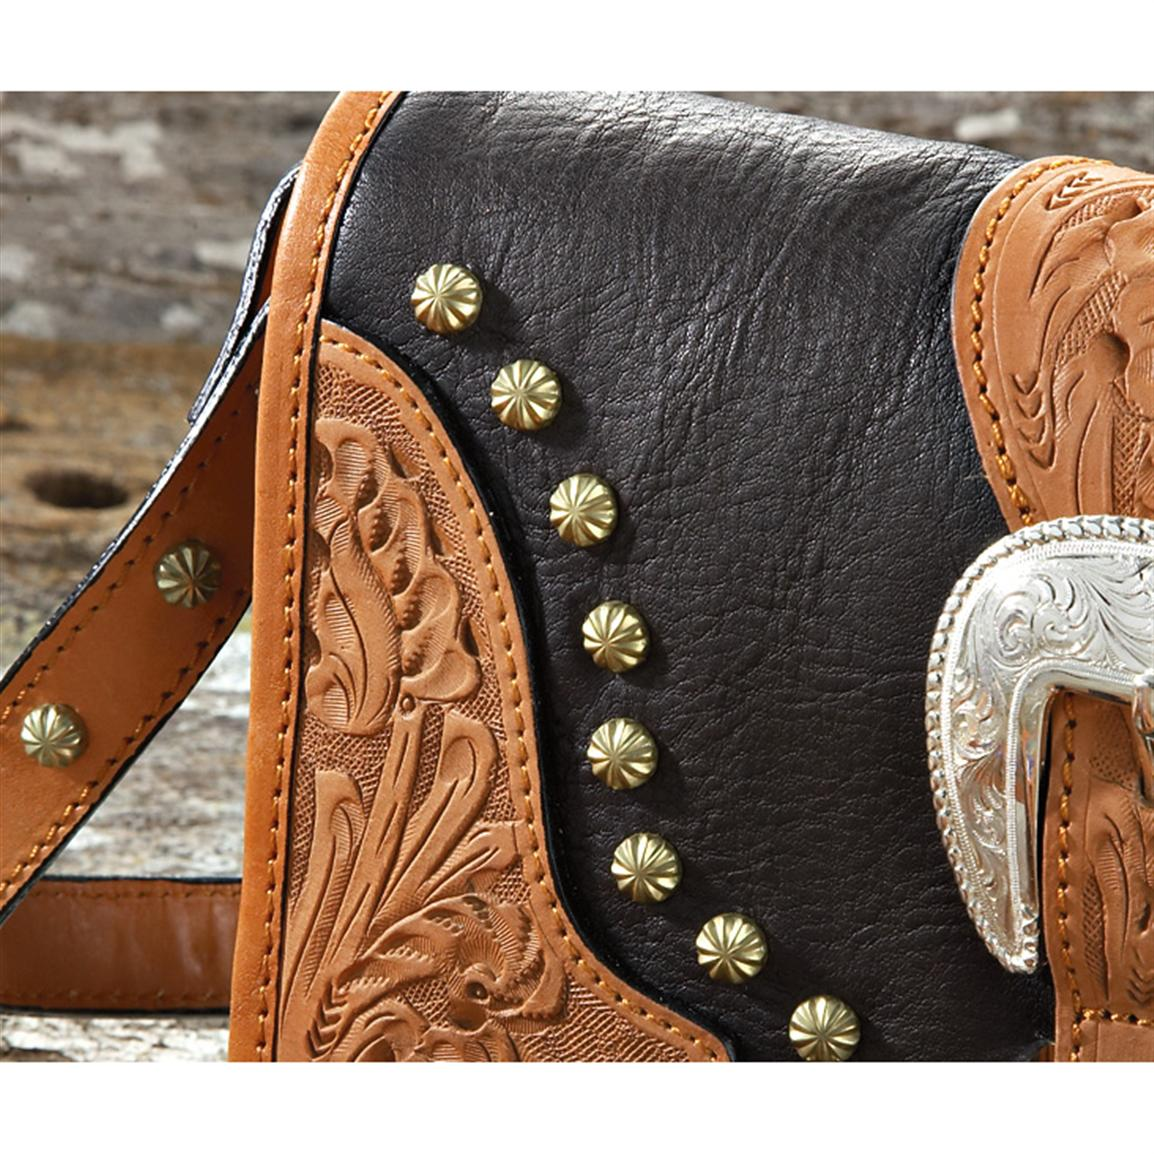 Hand Worked Leather Deluxe Hardware Montana Silversmiths